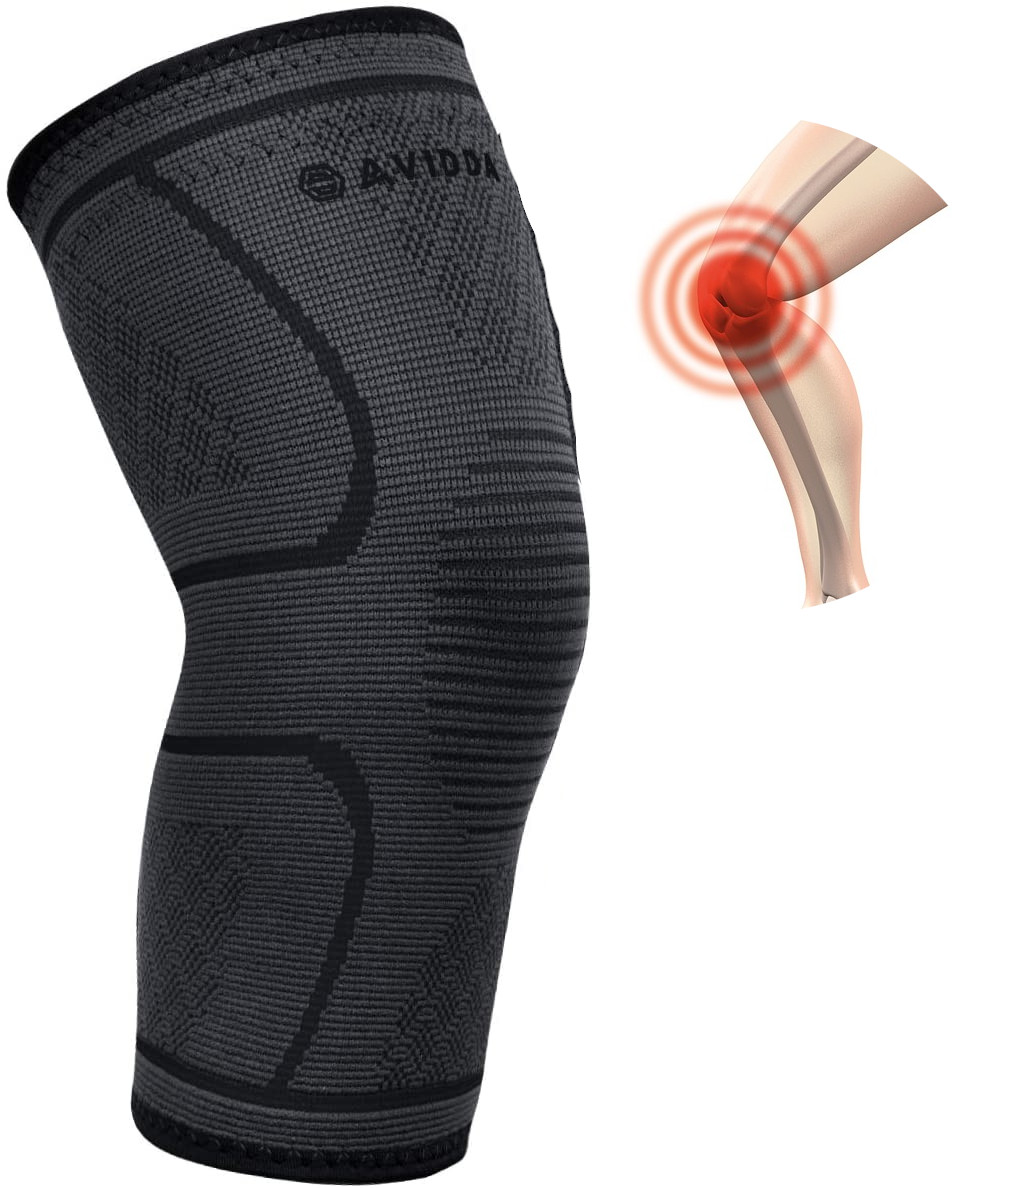 Knee Support Brace Compression Knee Sleeve